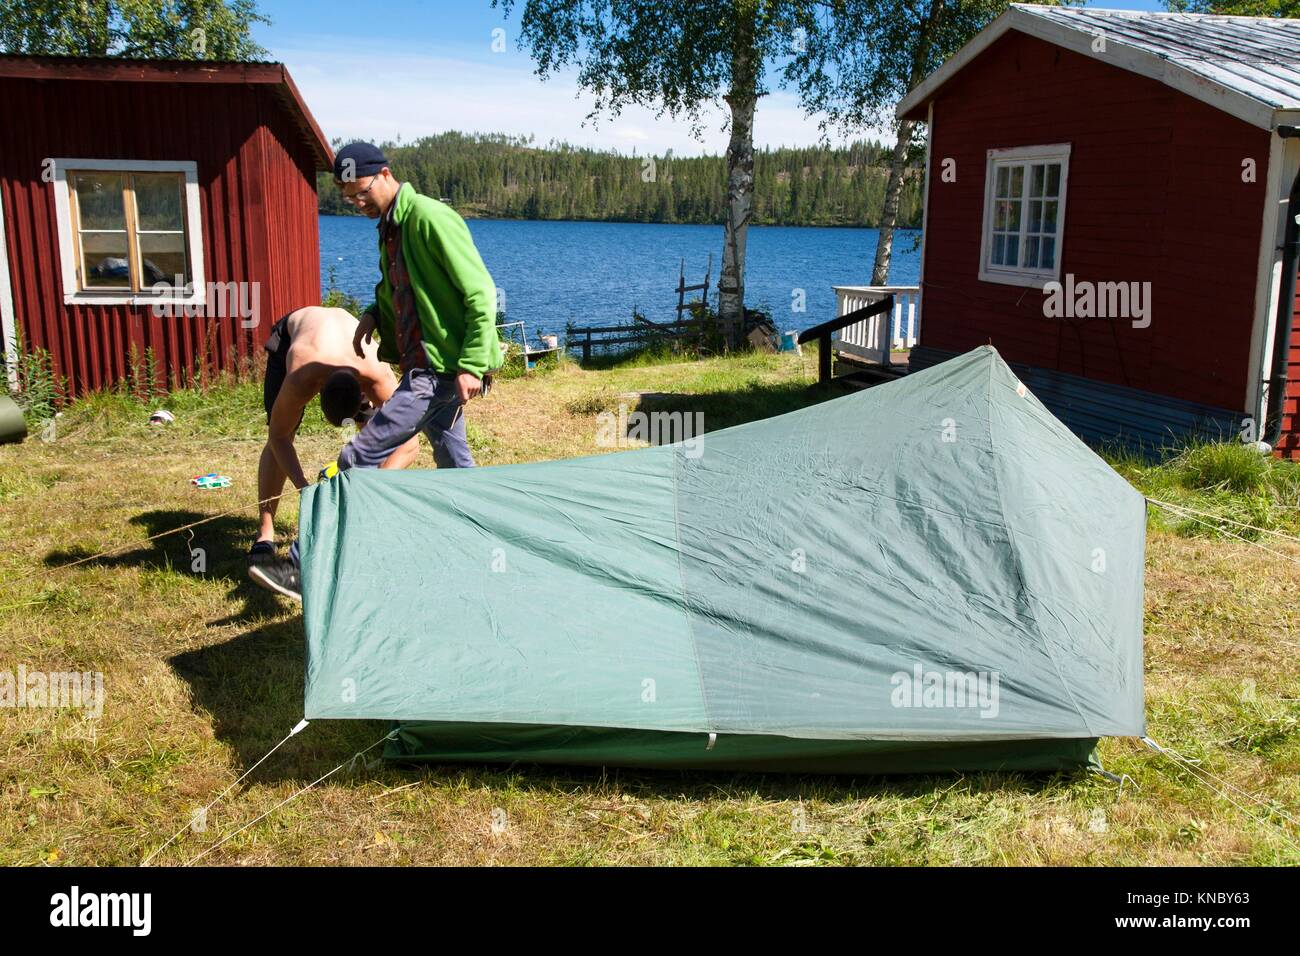 Brothers putting up a tent, Northern Sweden. - Stock Image